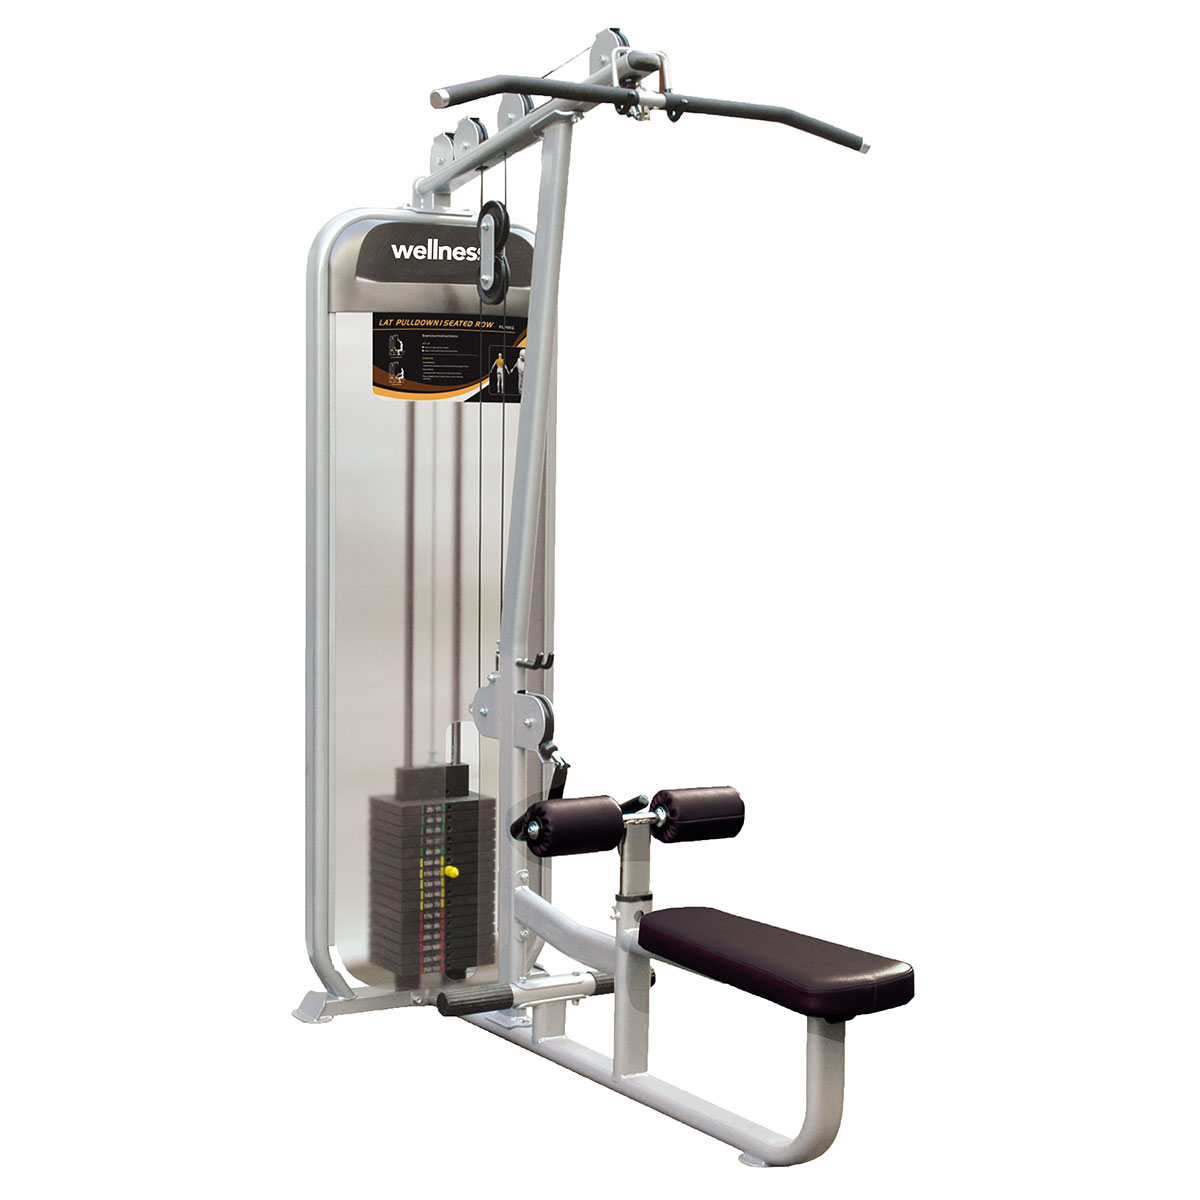 Lat Pull/Seate Row - Plamax Dual Series Wellness